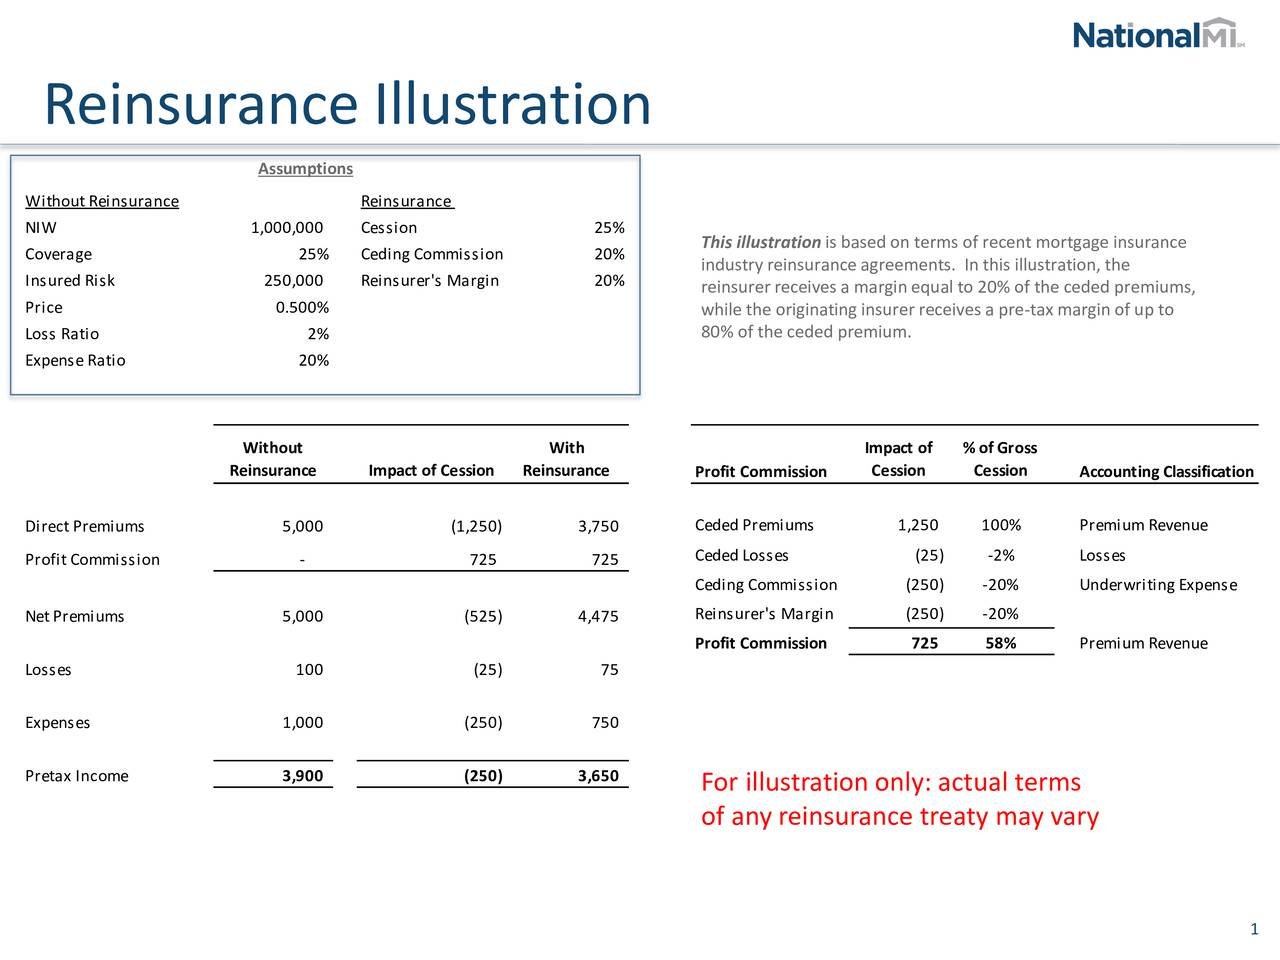 Assumptions Without Reinsurance Reinsurance NIW 1,000,000 Cession 25% This illustrationis based on terms of recent mortgage insurance Coverage 25% Ceding Commission 20% industry reinsurance agreements. In this illustration, the Insured Risk 250,000 Reinsurer's Margin 20% reinsurer receives a margin equal to 20% of the ceded premiums, Price 0.500% while the originating insurer receives a pre-tax margin of up to Loss Ratio 2% 80% of the ceded premium. Expense Ratio 20% Without With Impact of % of Gross Reinsurance Impact of Cession Reinsurance Profit Commission Cession Cession Accounting Classification Direct Premiums 5,000 (1,250) 3,750 Ceded Premiums 1,250 100% Premium Revenue Profit Commission - 725 725 Ceded Losses (25) -2% Losses Ceding Commission (250) -20% Underwriting Expense Net Premiums 5,000 (525) 4,475 Reinsurer's Margin (250) -20% Profit Commission 725 58% Premium Revenue Losses 100 (25) 75 Expenses 1,000 (250) 750 Pretax Income 3,900 (250) 3,650 For illustration only: actual terms of any reinsurance treaty may vary 1